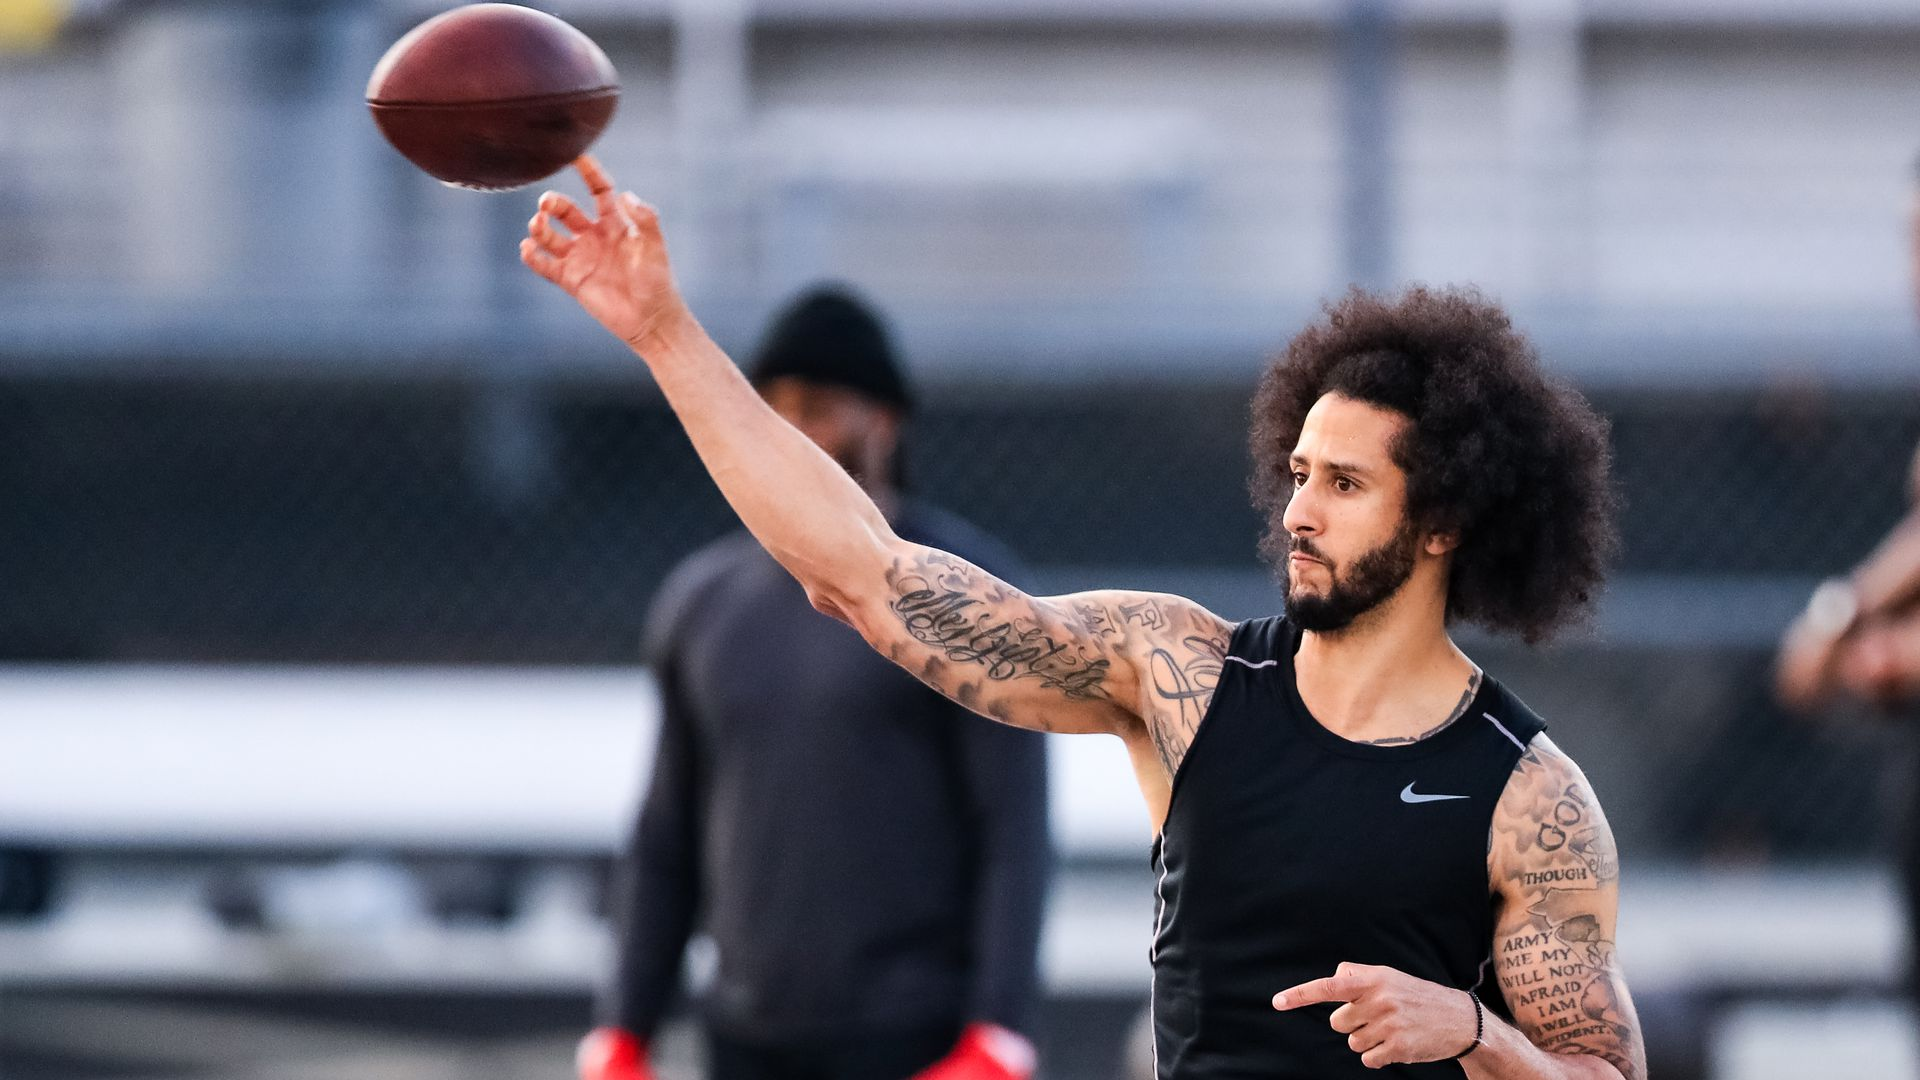 Colin Kaepernick Decries 'American Terrorist Attacks' in Wake of Soleimani's Death